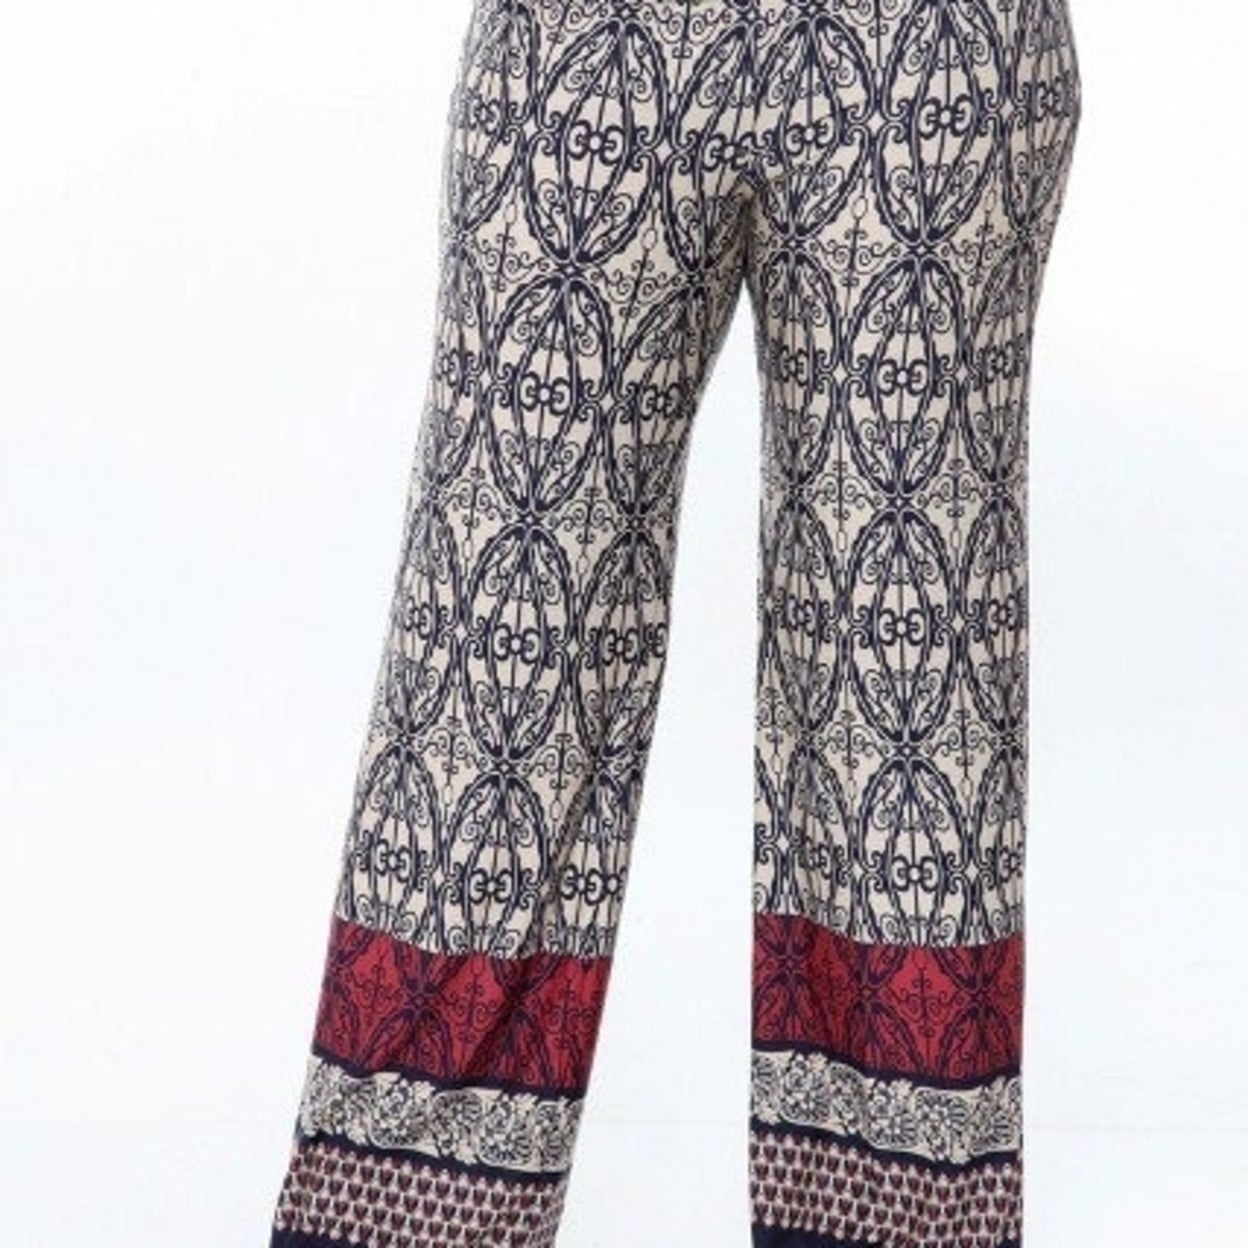 265c2deb1b4 Shop White Mark Ps550-116-3Xl Plus Size Printed Palazzo Pants 116-Beige    Navy - 3Xl - Free Shipping On Orders Over  45 - Overstock.com - 26963038